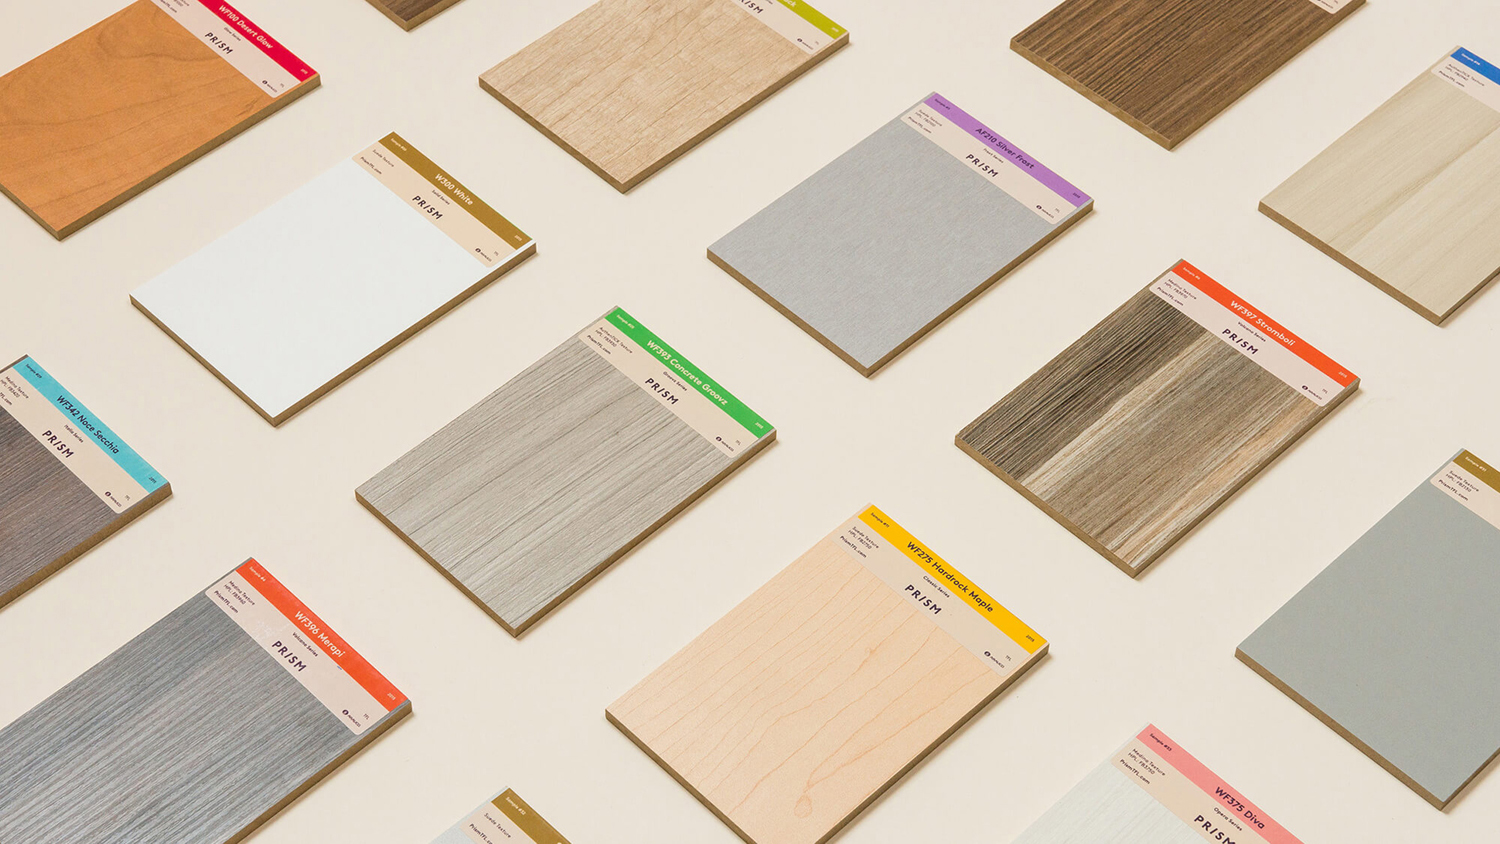 Brand identity and sample labels for American laminate brand Prism by Atlanta based graphic design studio Matchstic